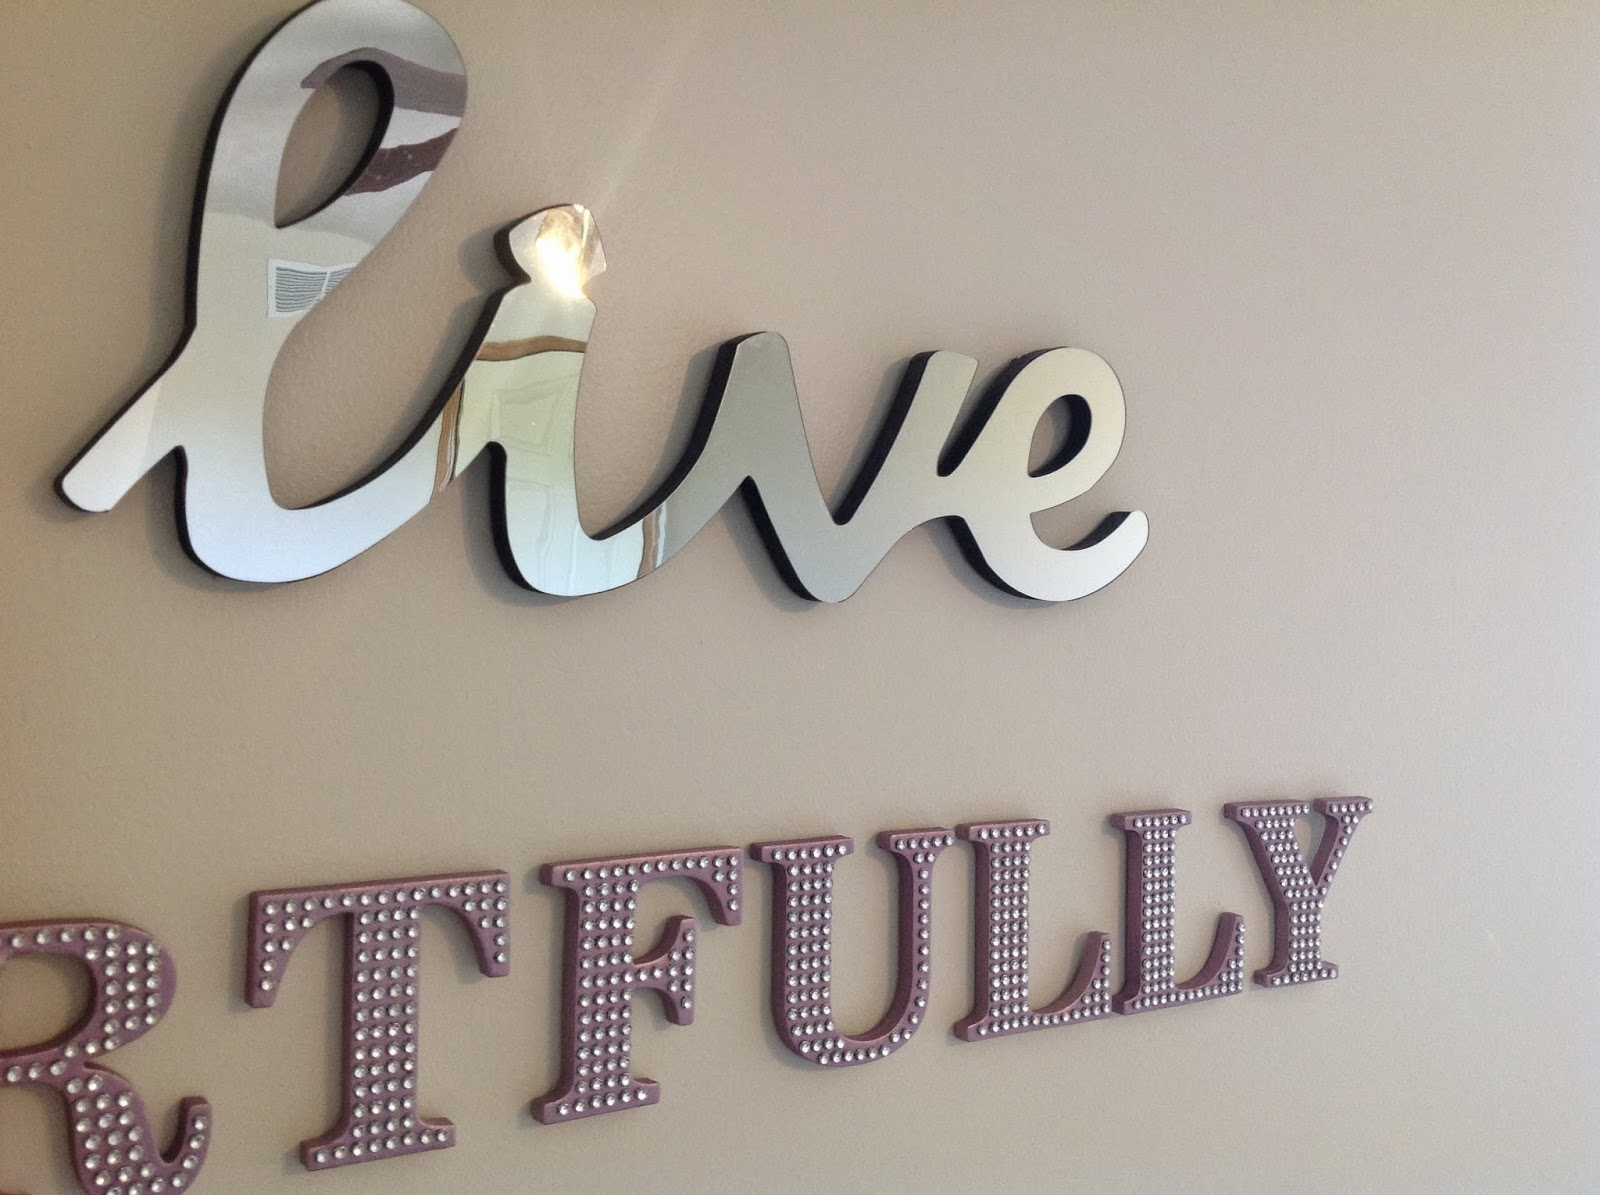 Mirrored Wall Letters Nursery Mirrored Wall Letters Nursery decorating ideas extraordinary image of accessories for bedroom 1600 X 1195